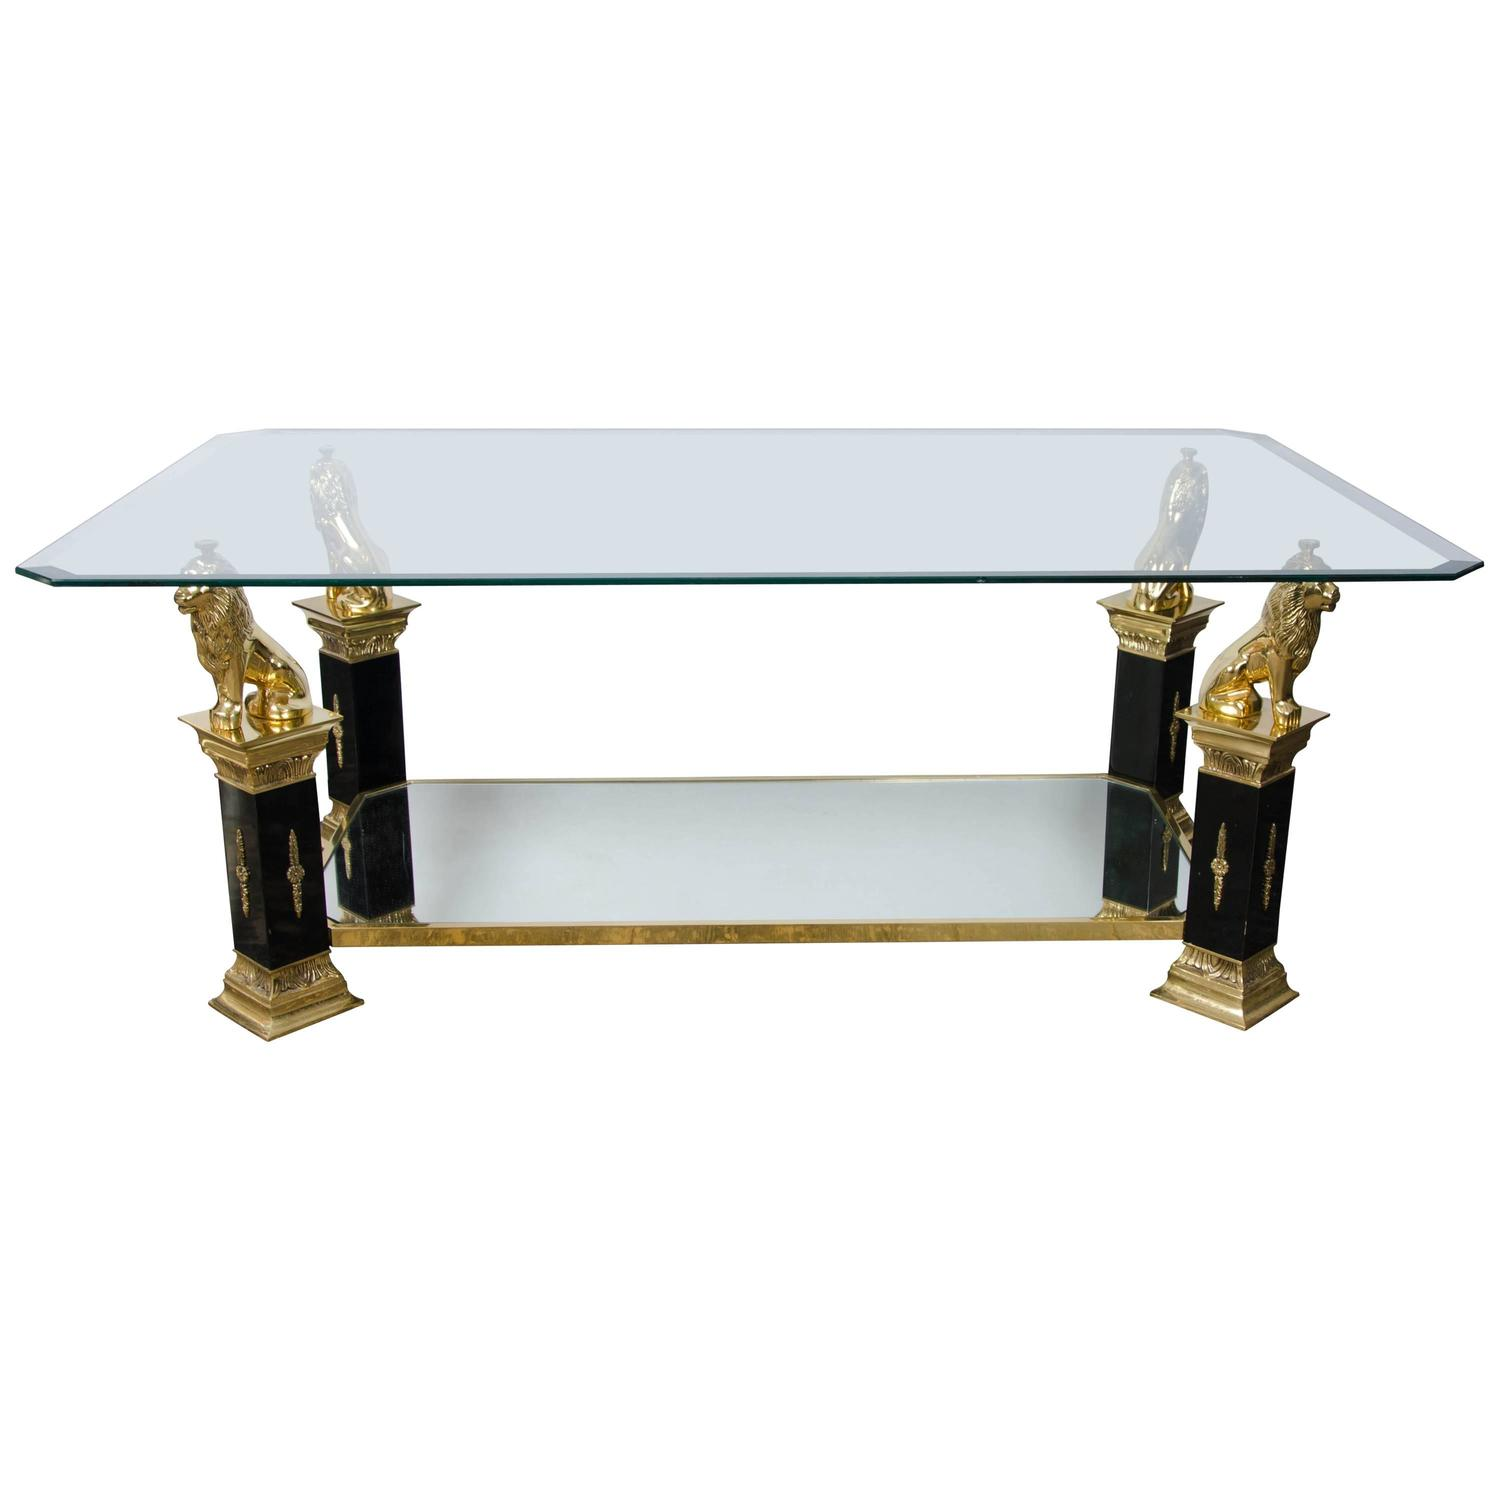 70 39 s belgium coffee table at 1stdibs for Coffee tables 70s